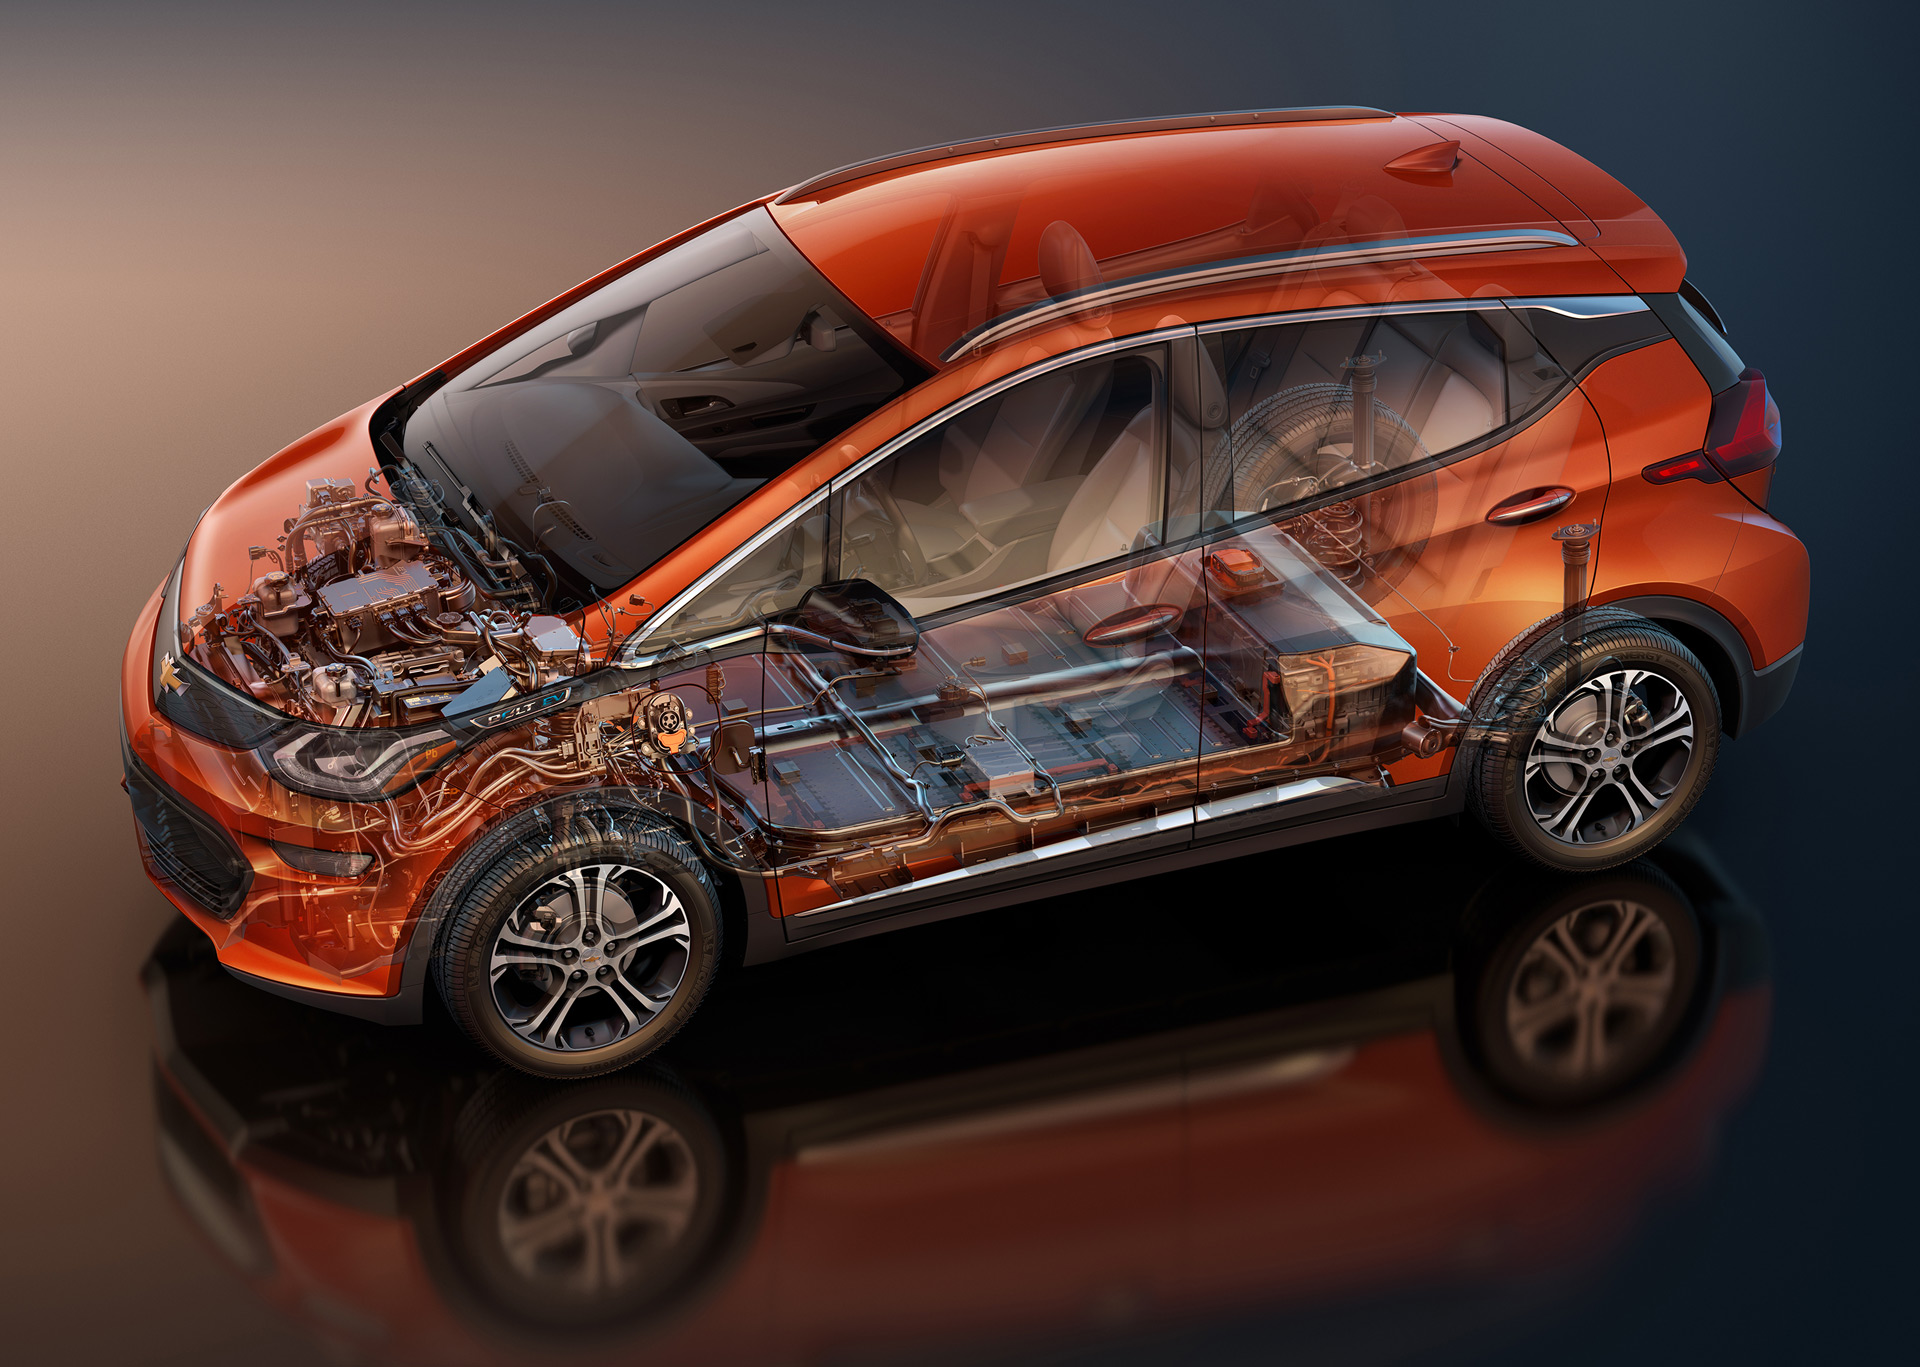 2017 Chevy Bolt EV 10 to 40 percent battery-capacity loss: possible